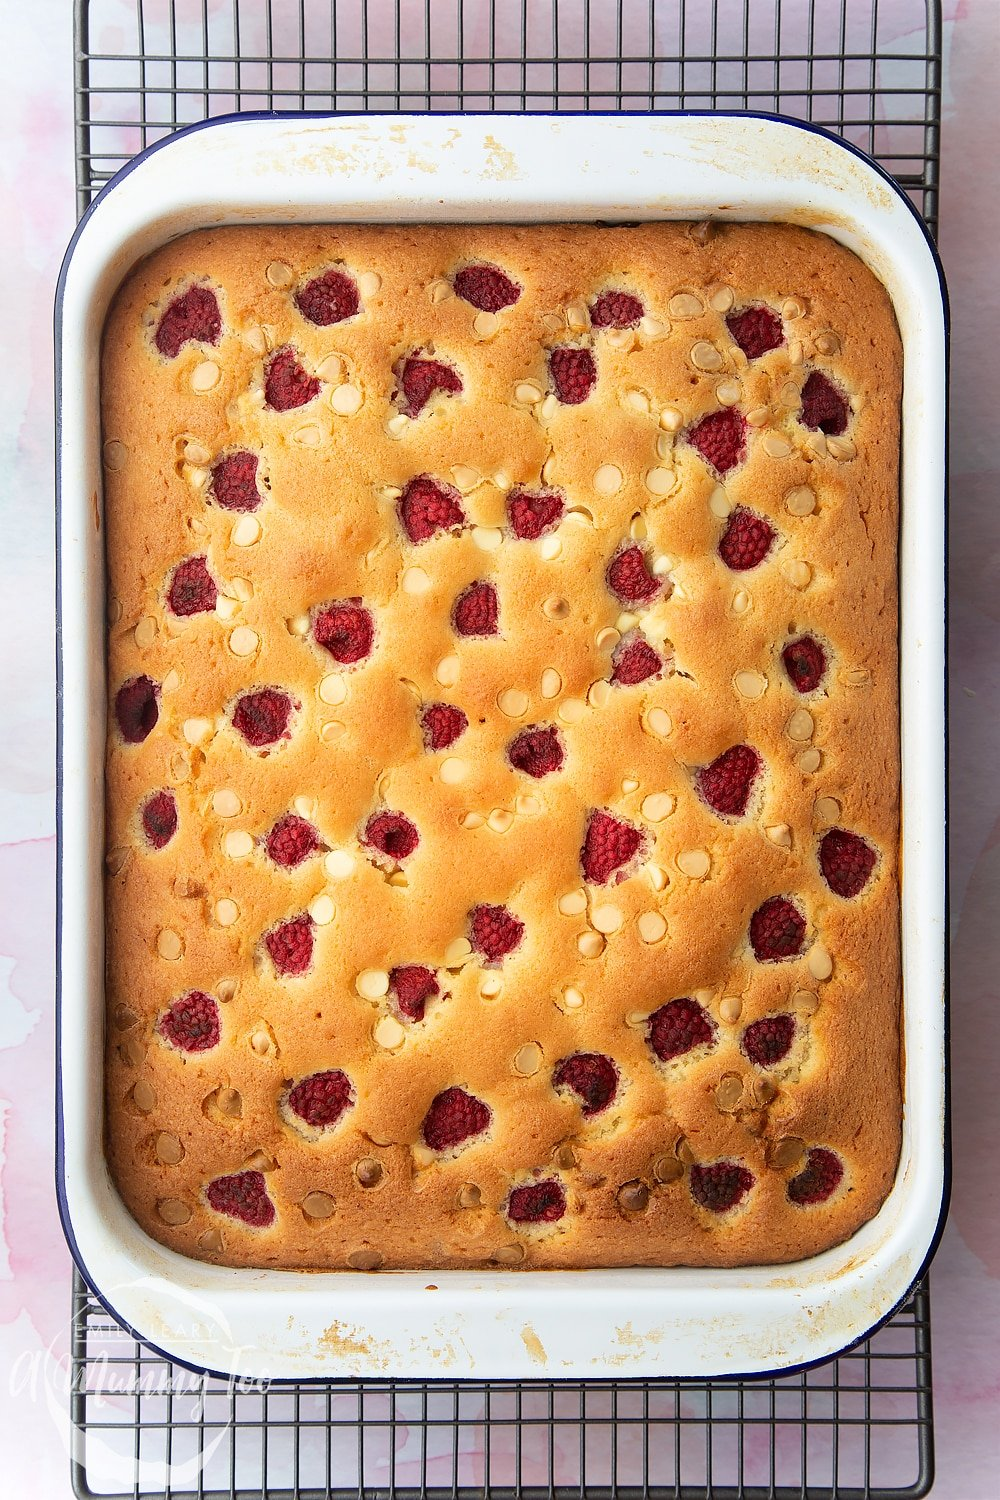 The raspberry and white chocolate traybake once baked in the oven.